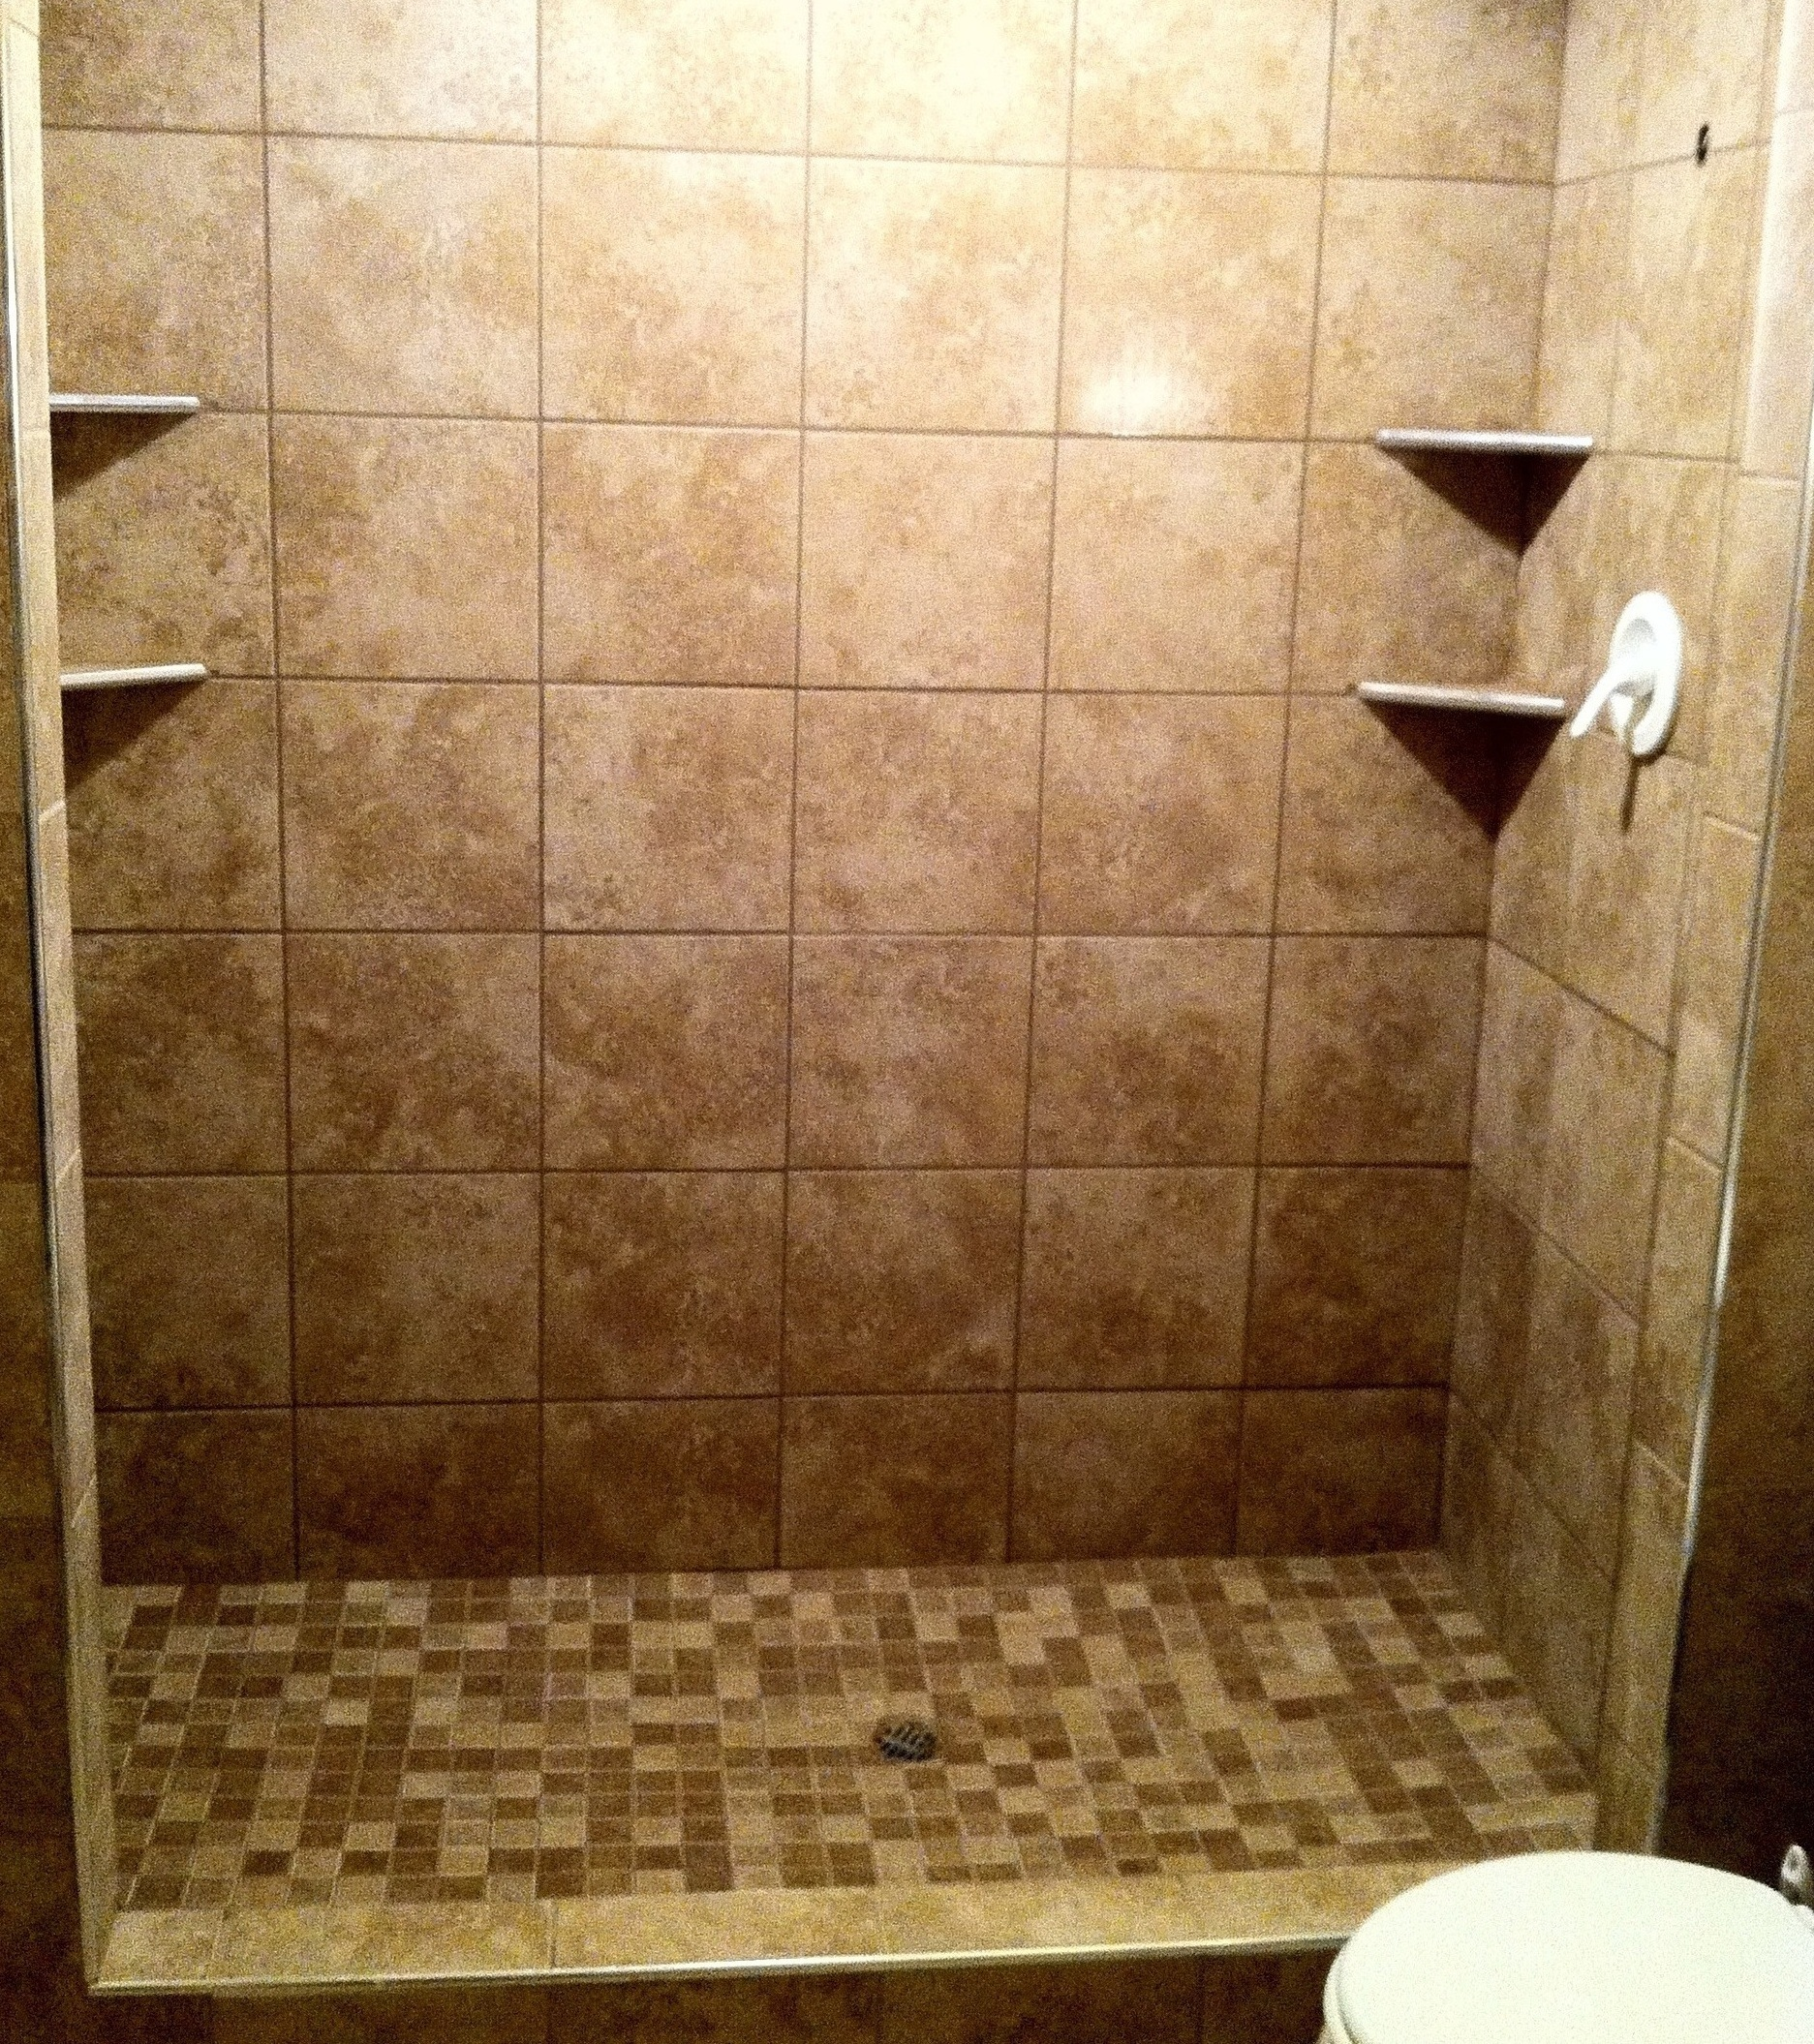 Shower Installation Complete Columbia Missouri Bathroom Remodel Tile Shower